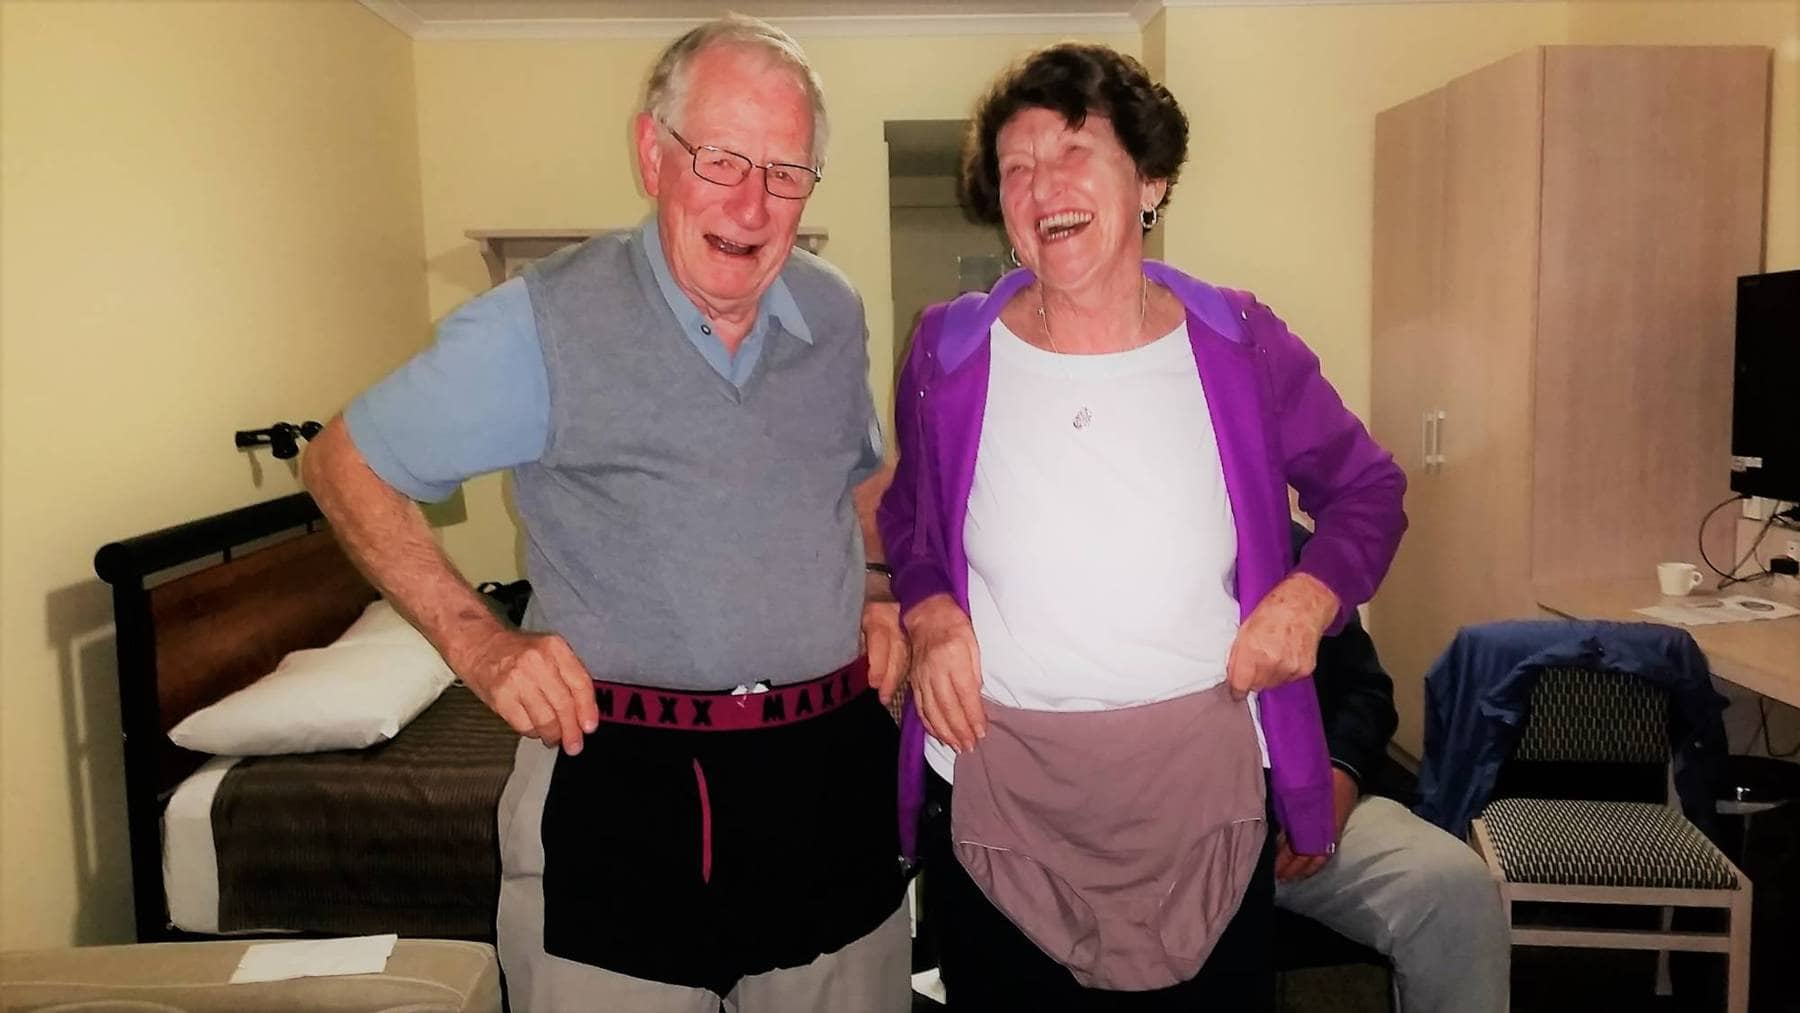 man and woman holding up undies and laughing